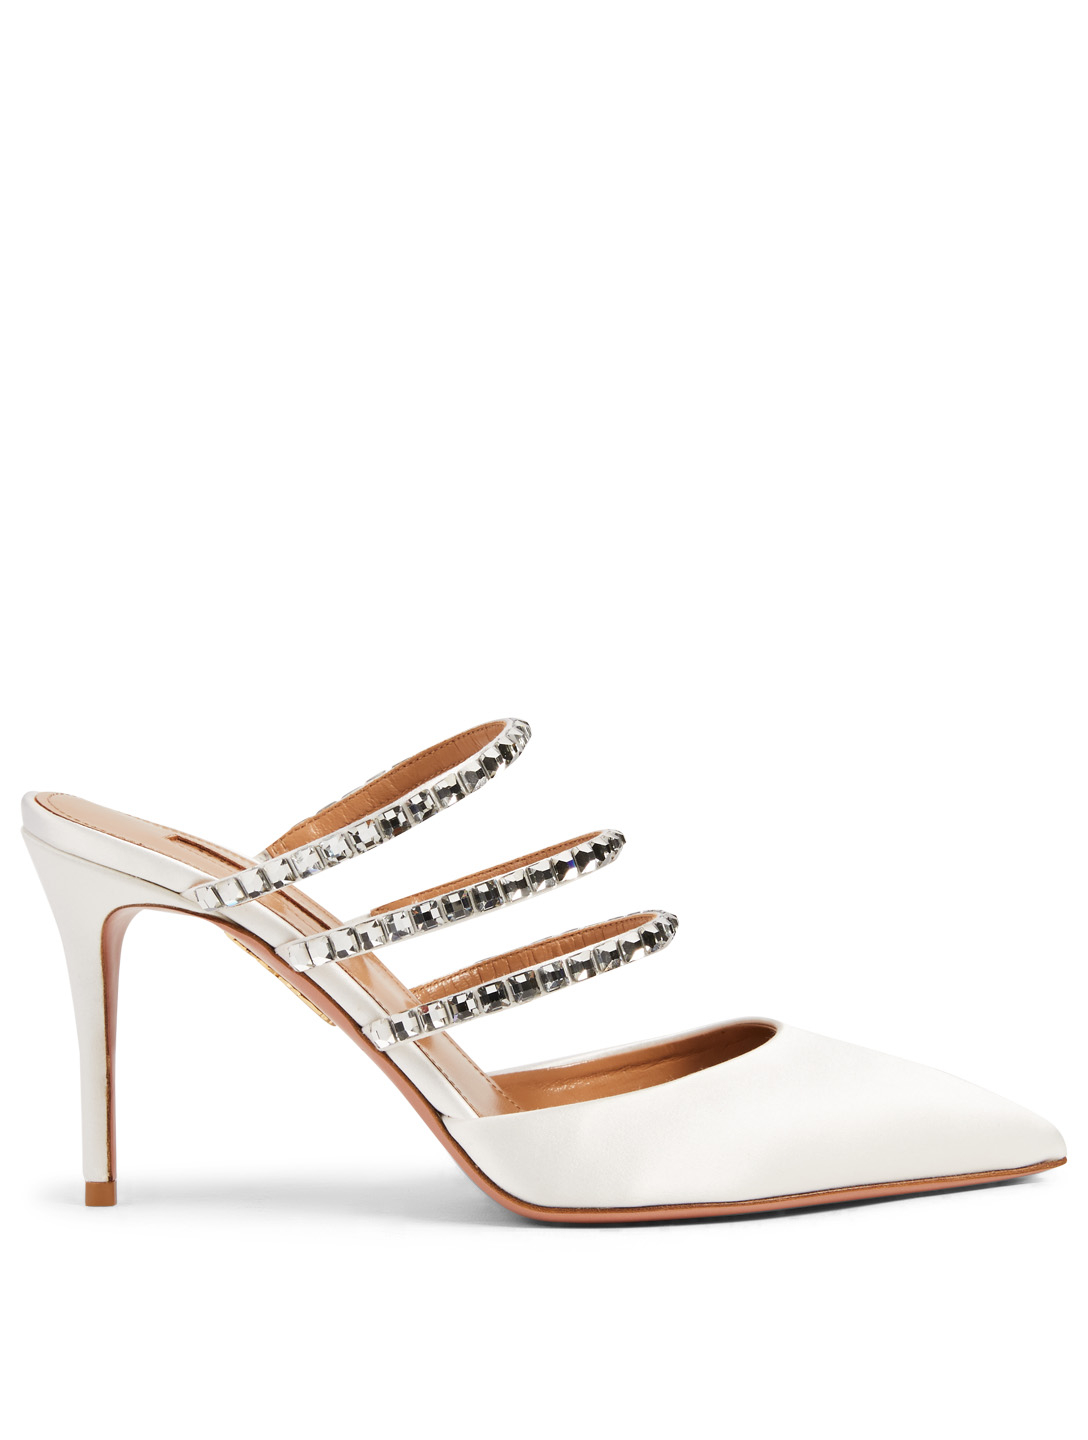 AQUAZZURA Donata 85 Satin Mules With Crystal Bands Women's White